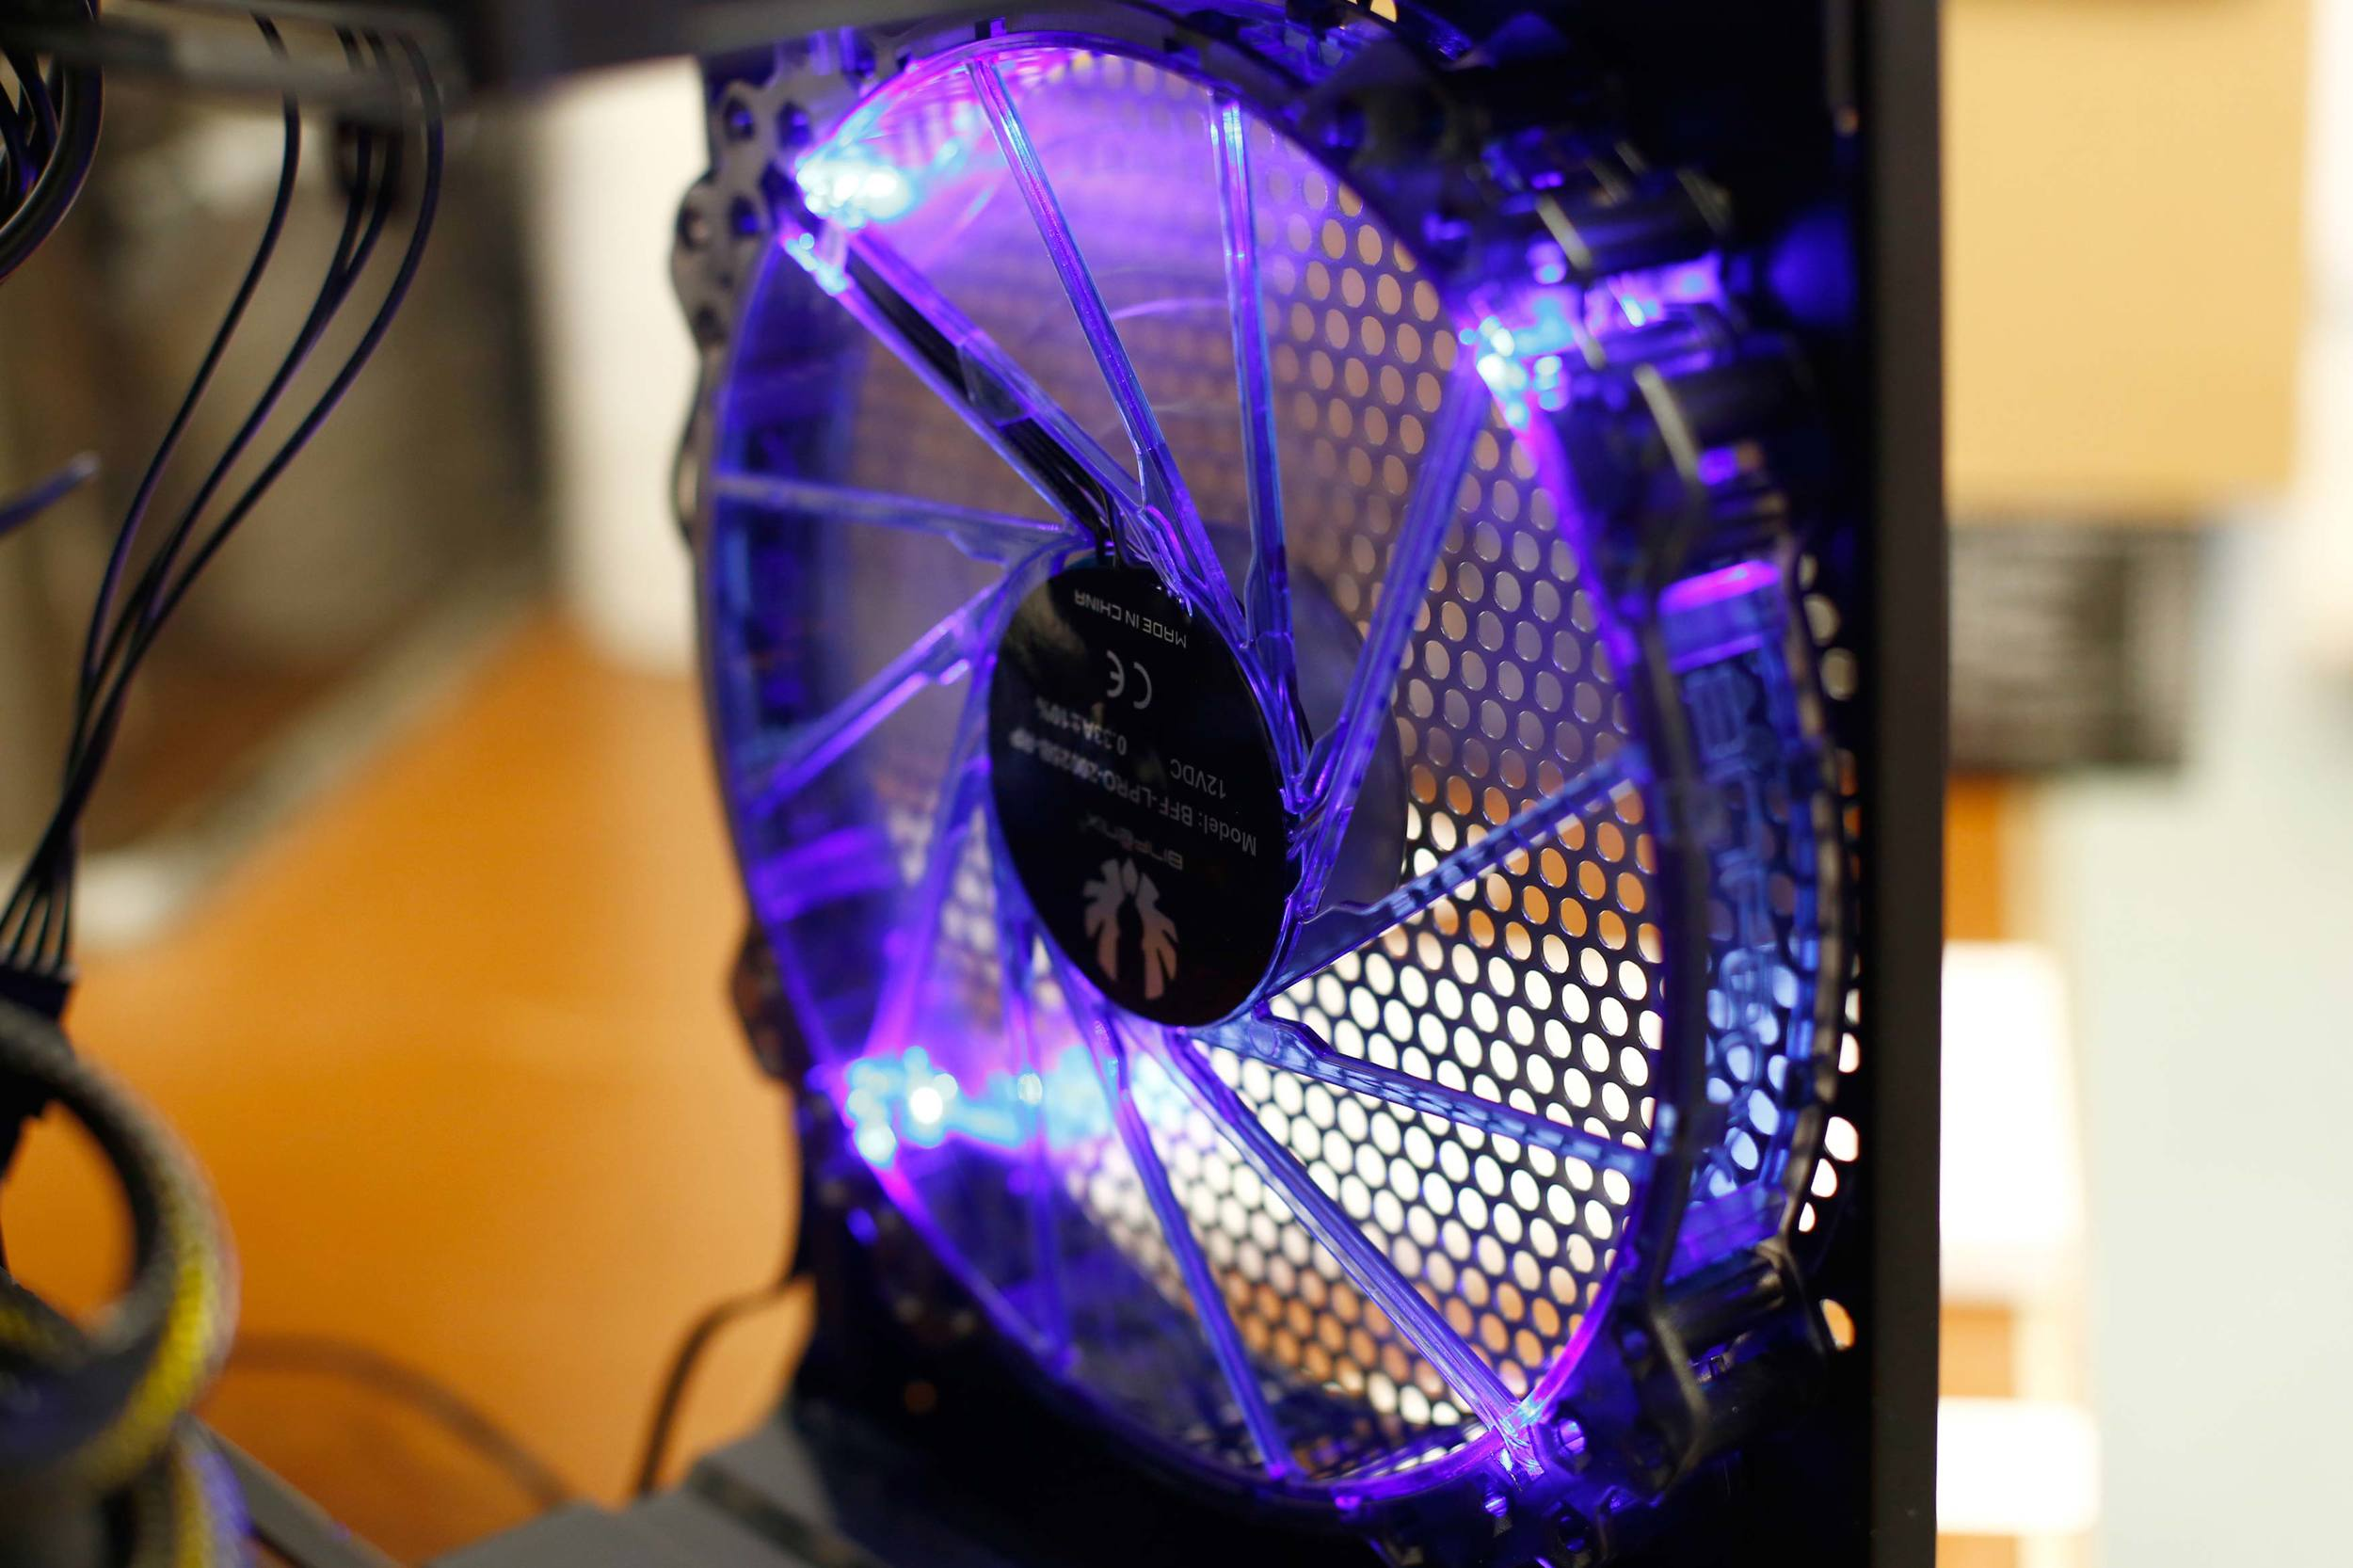 One of the large BitFenix Spectre Pro fans I installed on my computer. And yes, I turned off the blue LED lights.